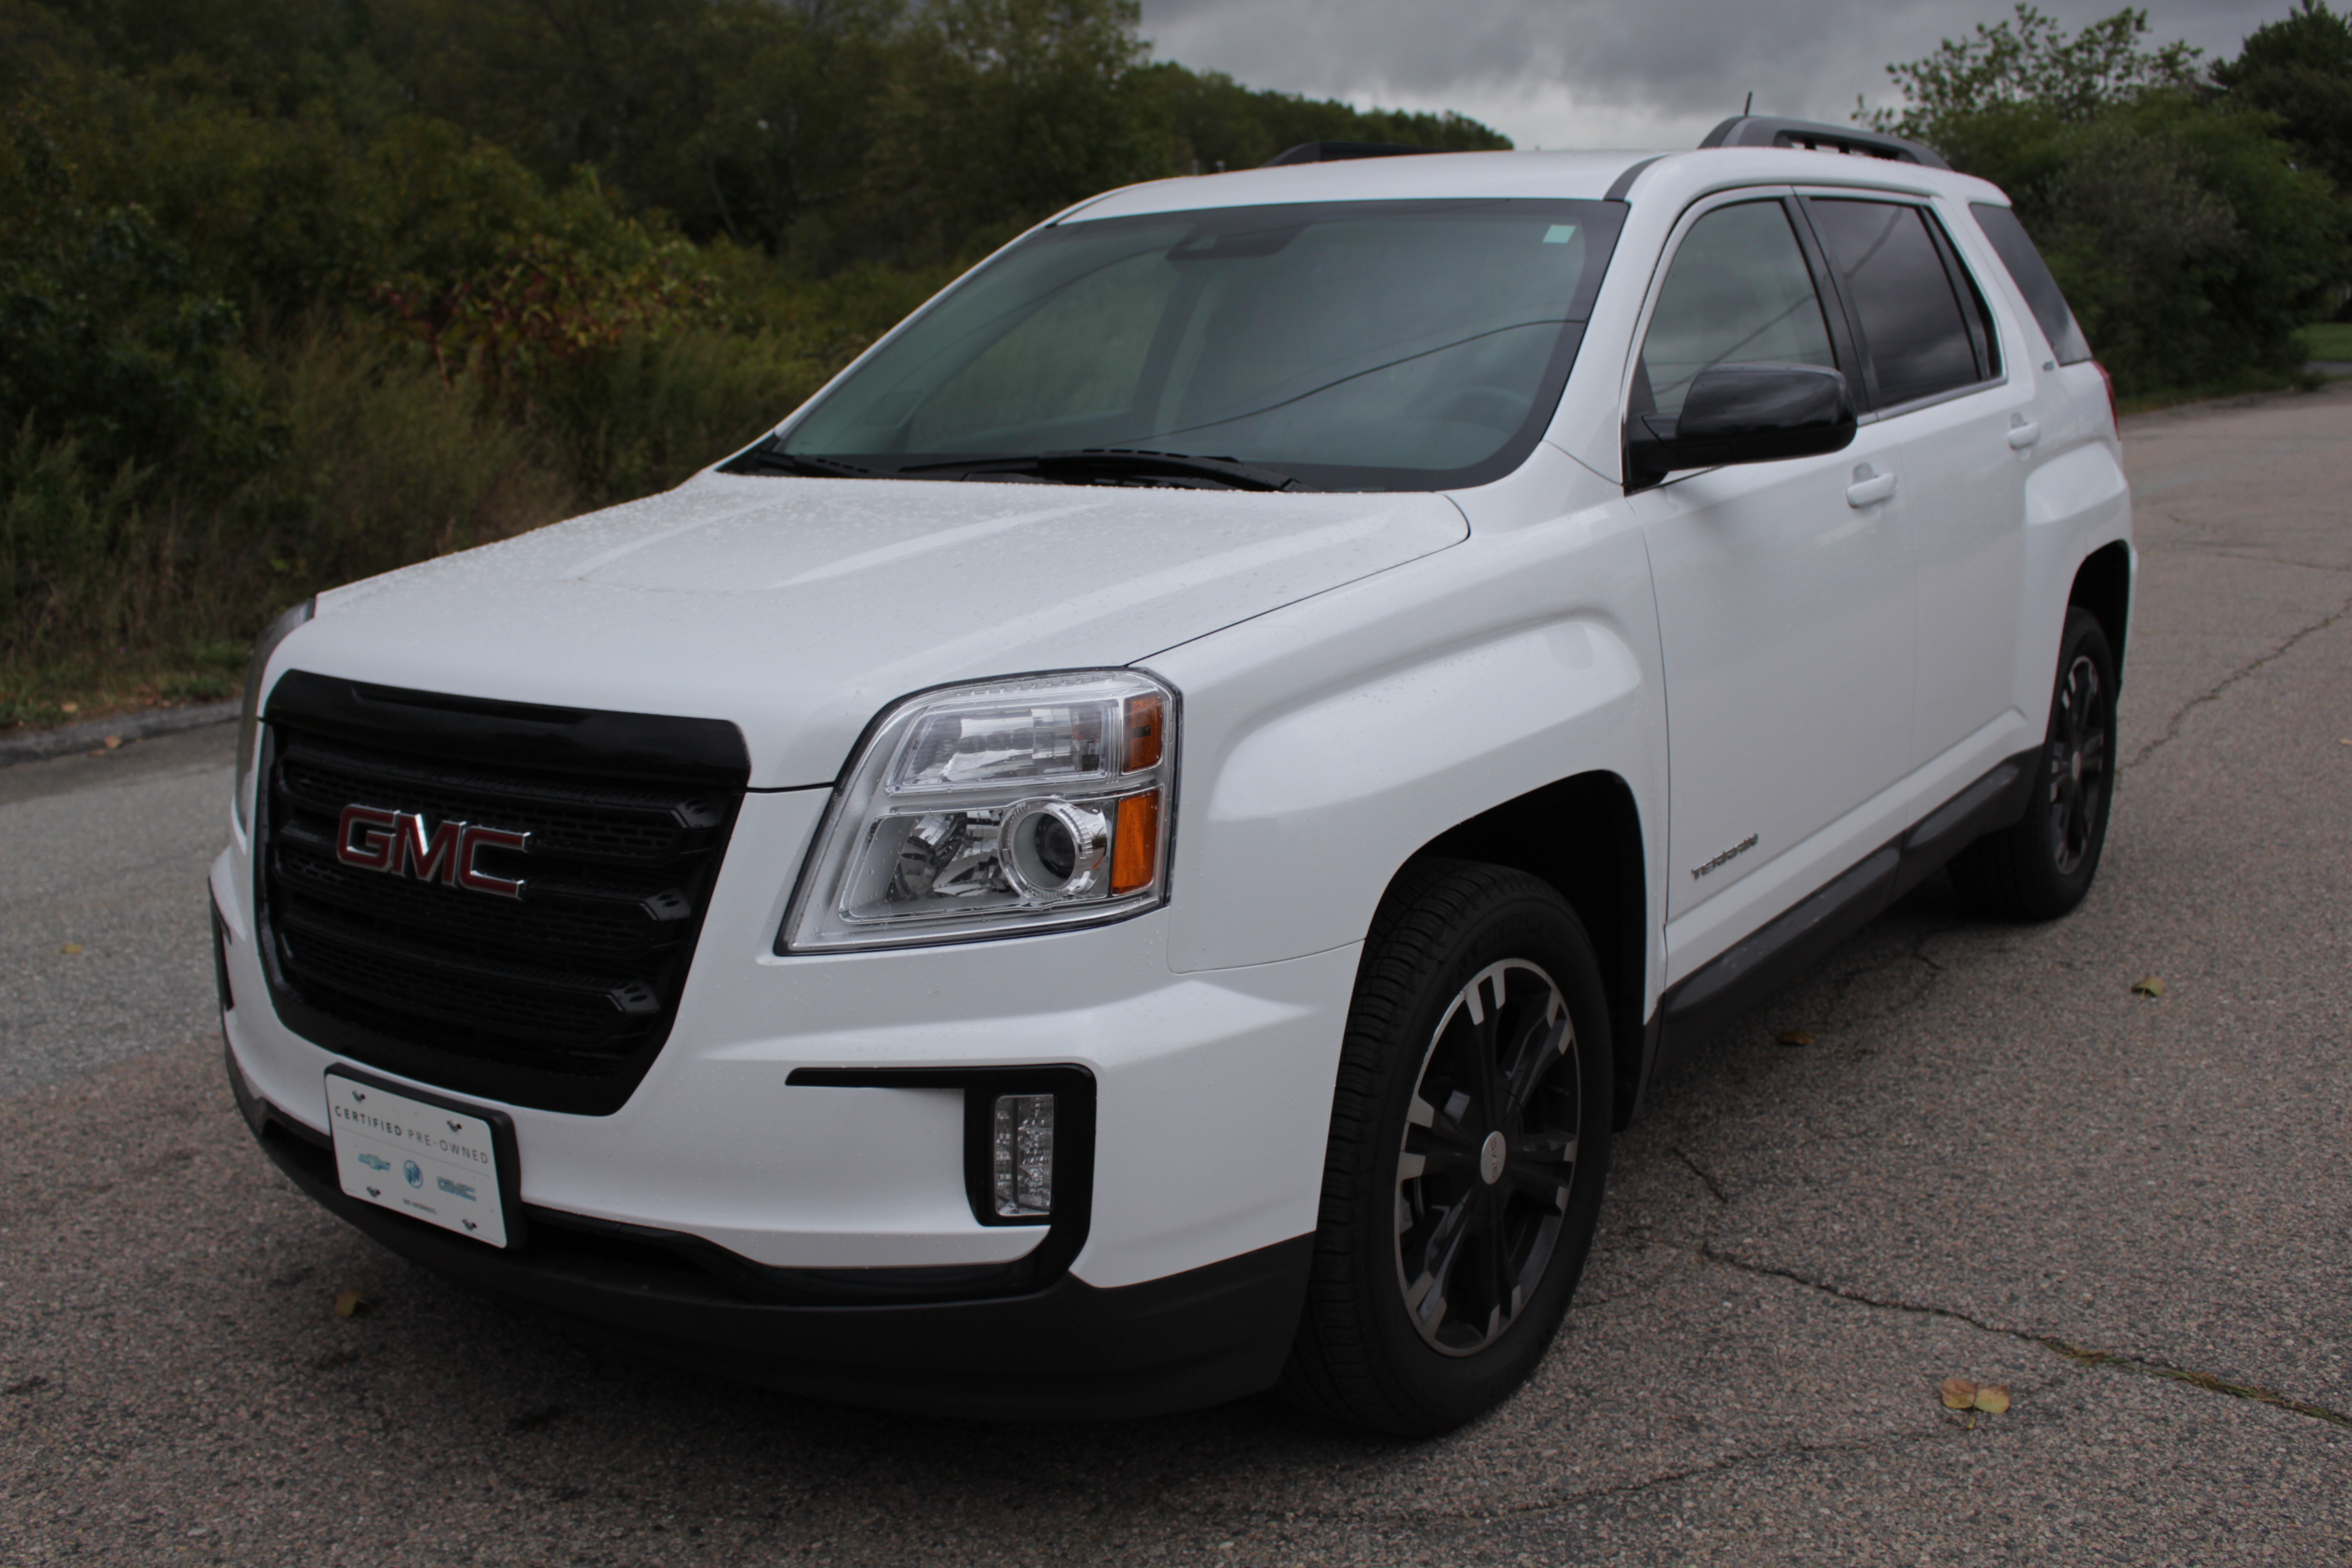 lease offer gmc terrain new yukon watch video march youtube